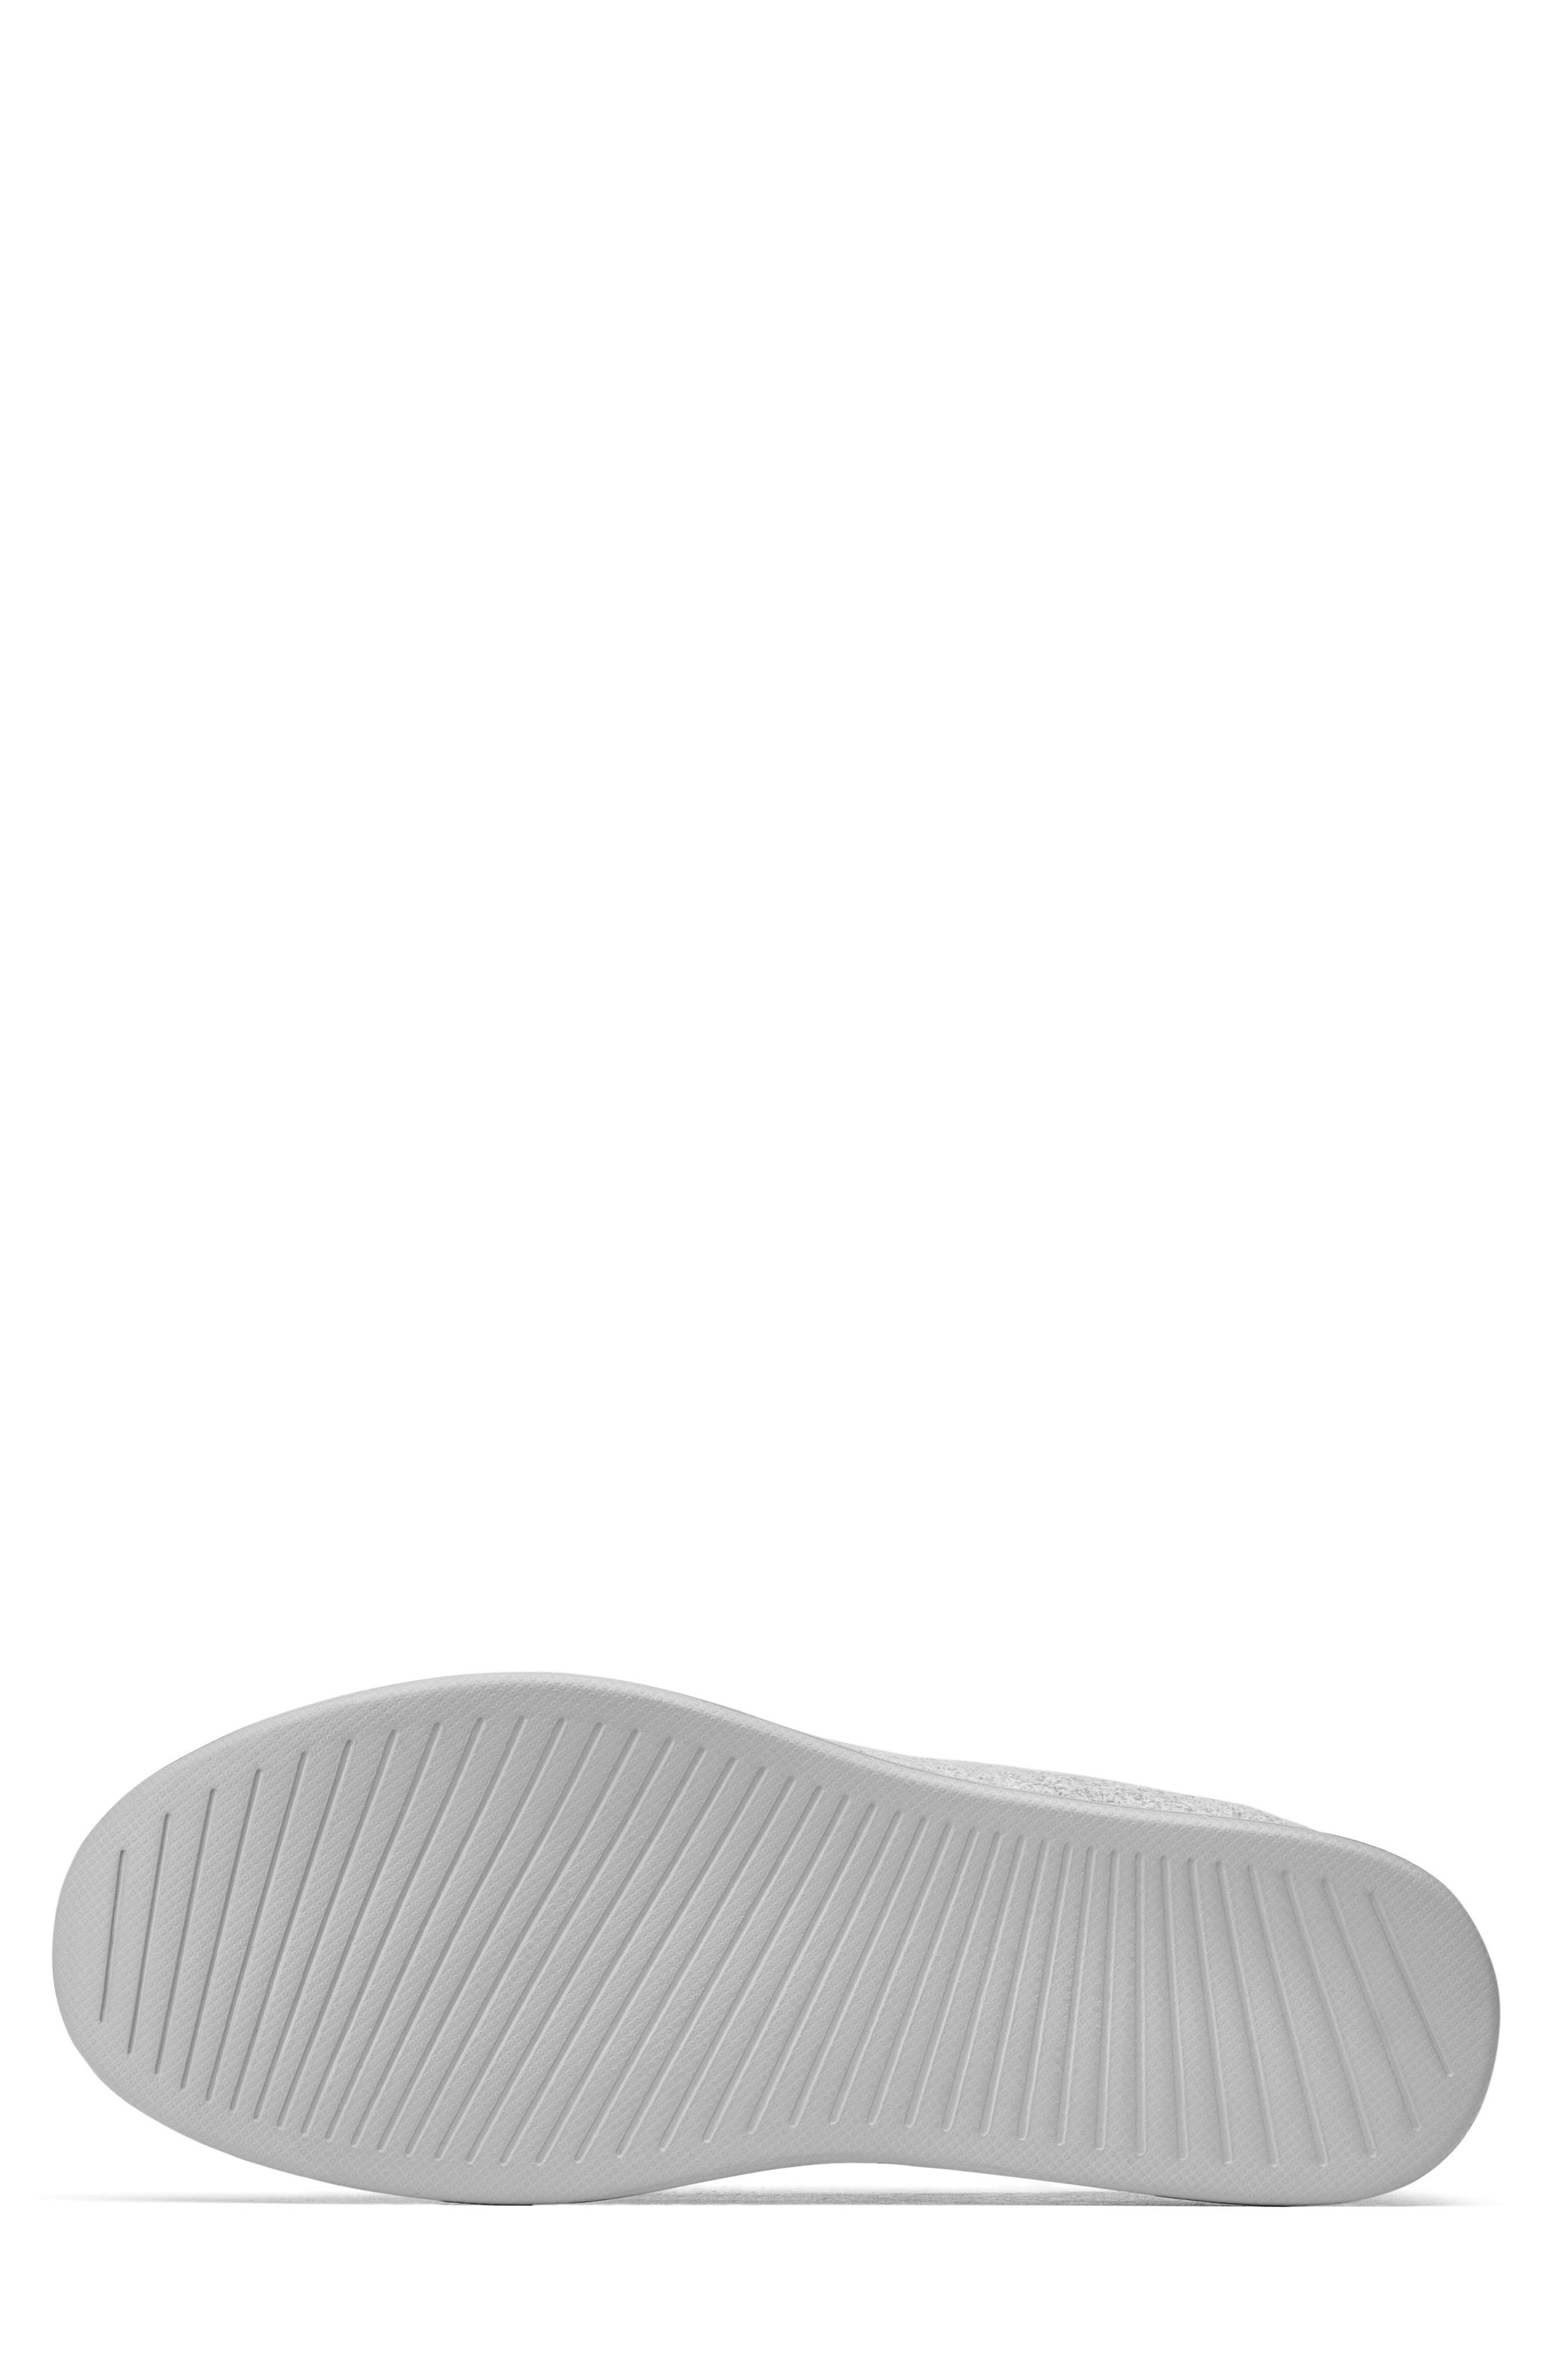 Wool Lounger,                             Alternate thumbnail 5, color,                             Sf Grey